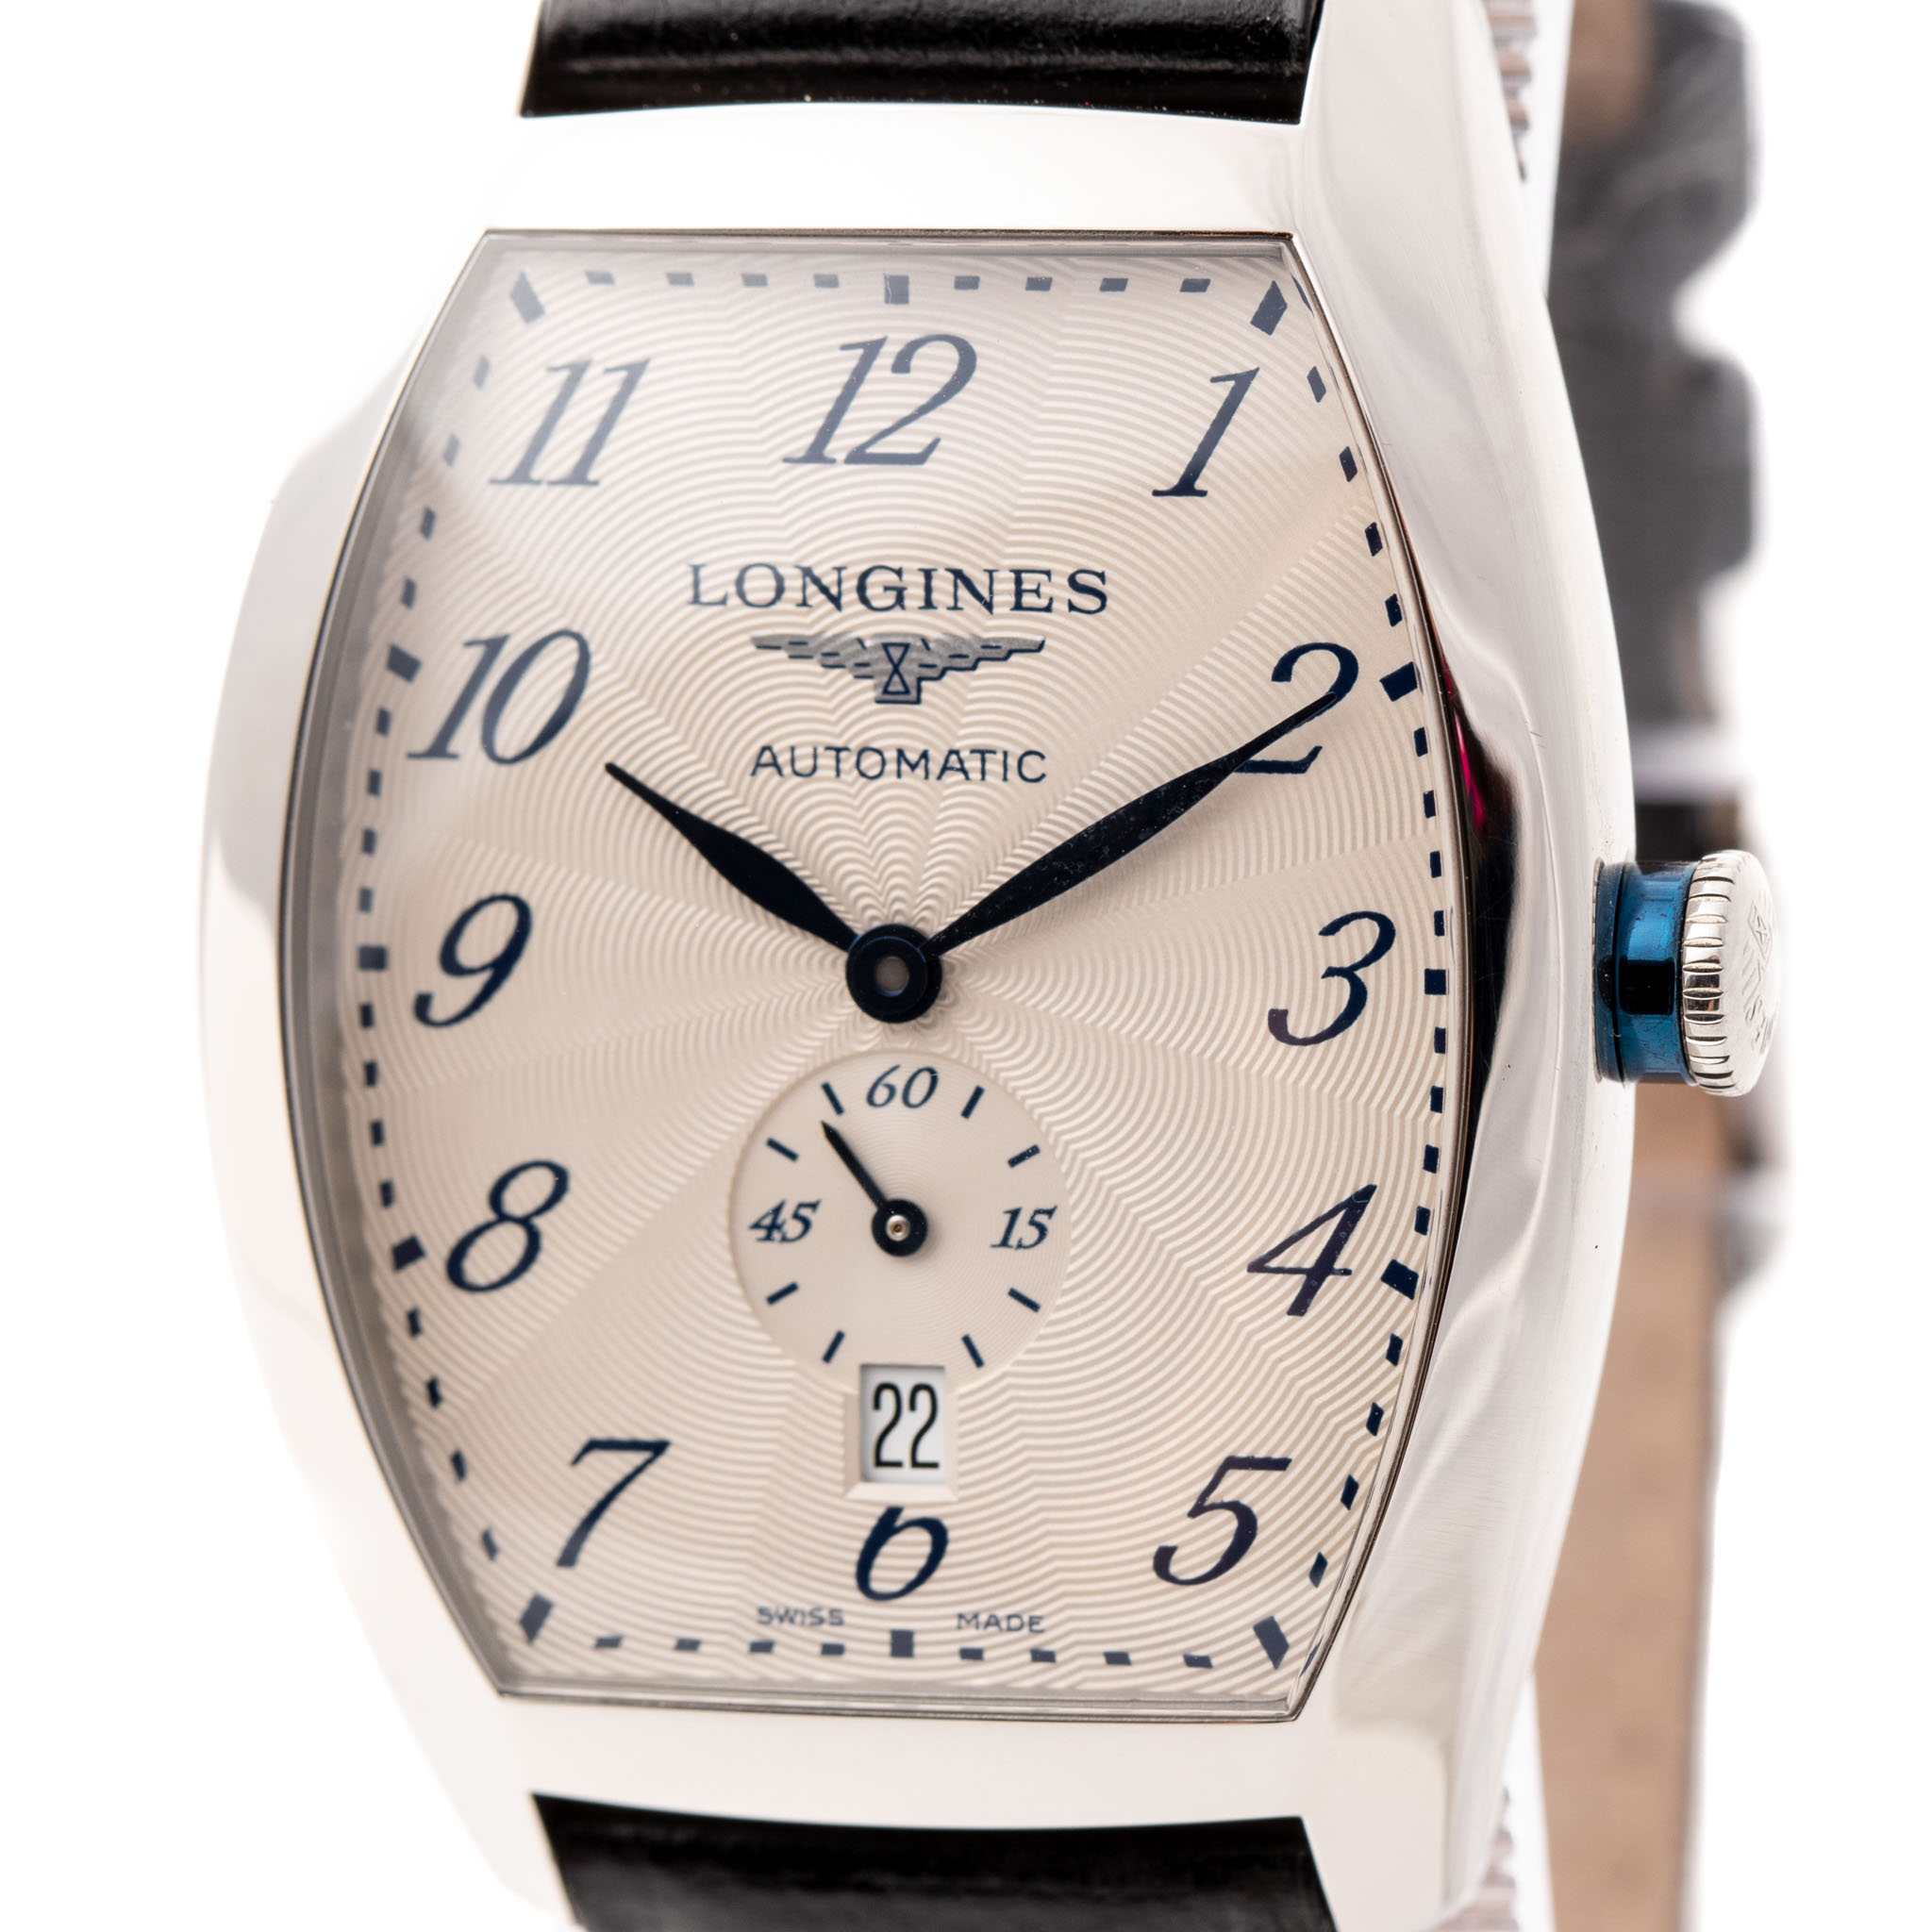 LONGINES EVIDENZA 33MM STEEL SILVER DIAL BLACK LEATHER STRAP REF: L2.642.4.73.4